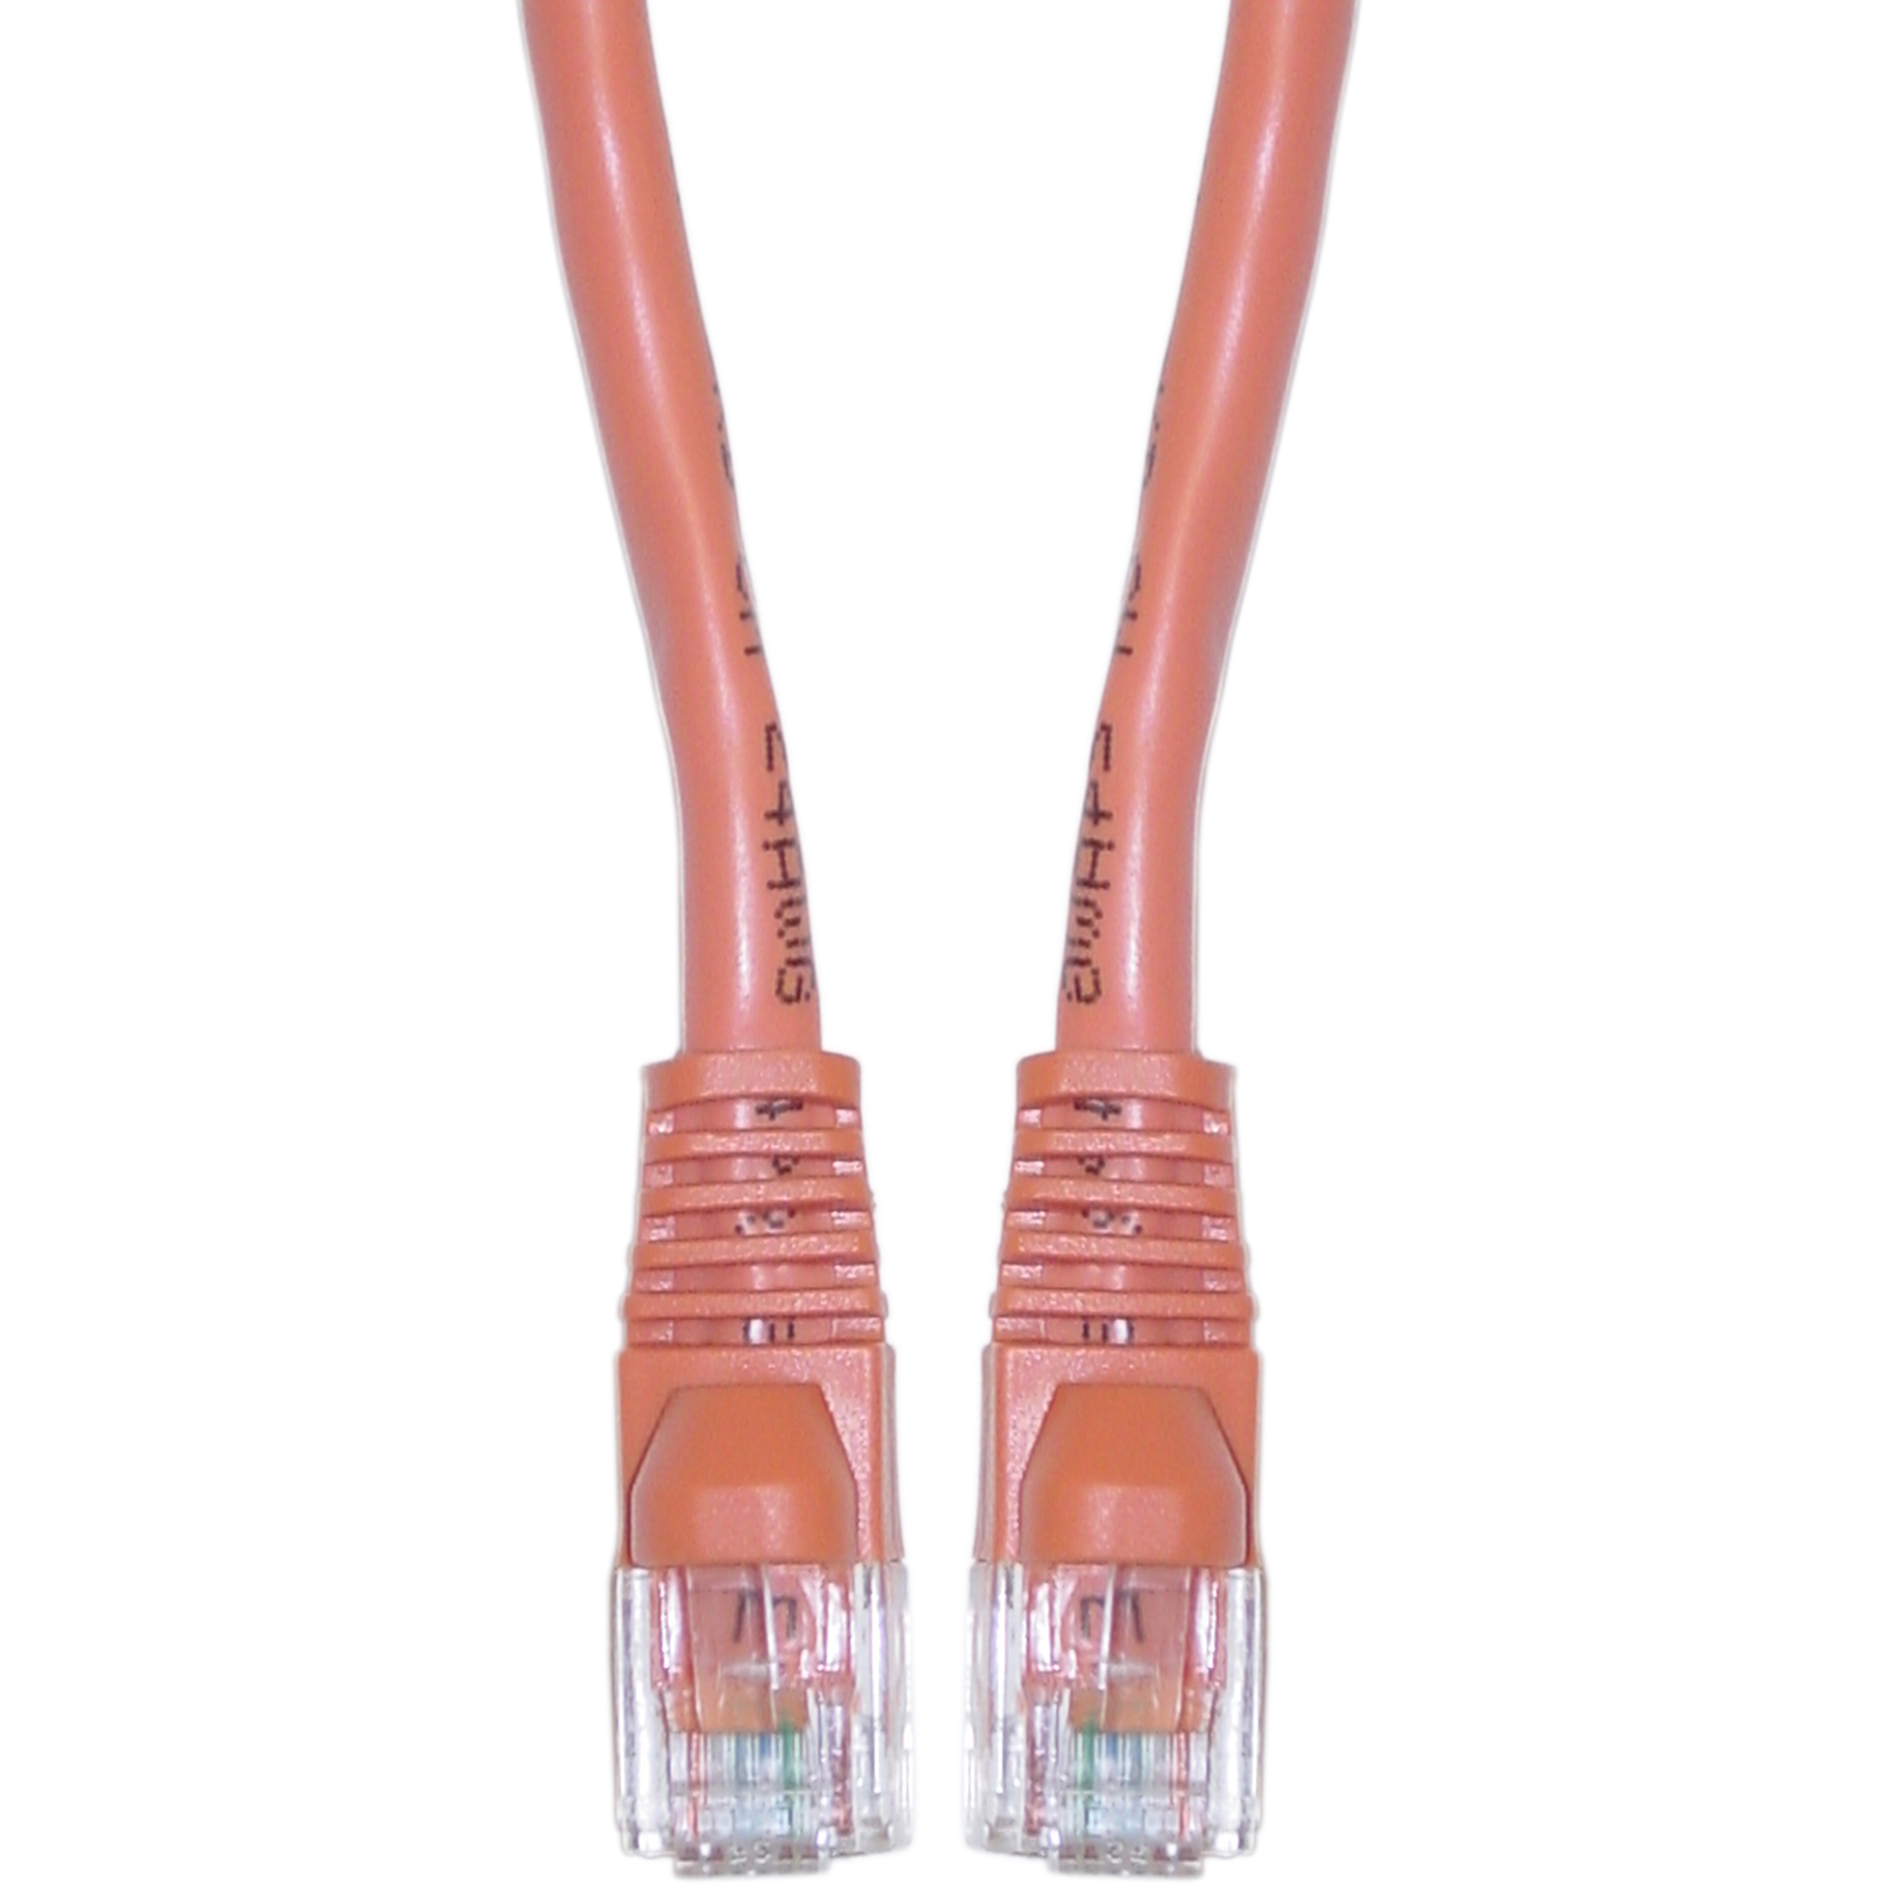 hight resolution of cablewholesale 10x8 33325 cat6 orange ethernet crossover cable snagless molded boot 25 foot walmart com